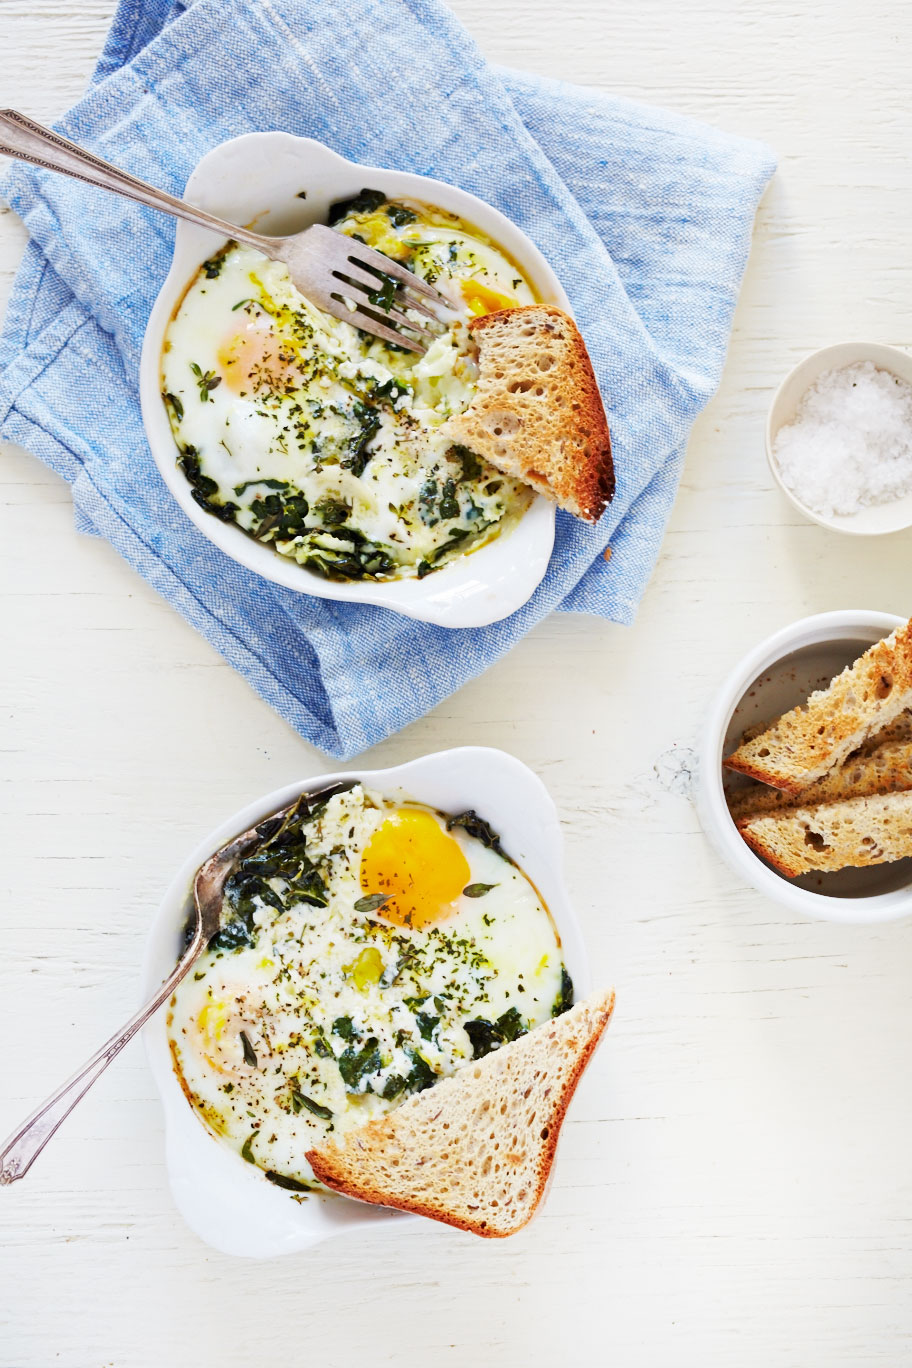 20 Favorite Egg Recipes / Ways to Eat Eggs (for Breakfast, Lunch and Dinner) - Baked Egg with Ricotta, Thyme & Chervil